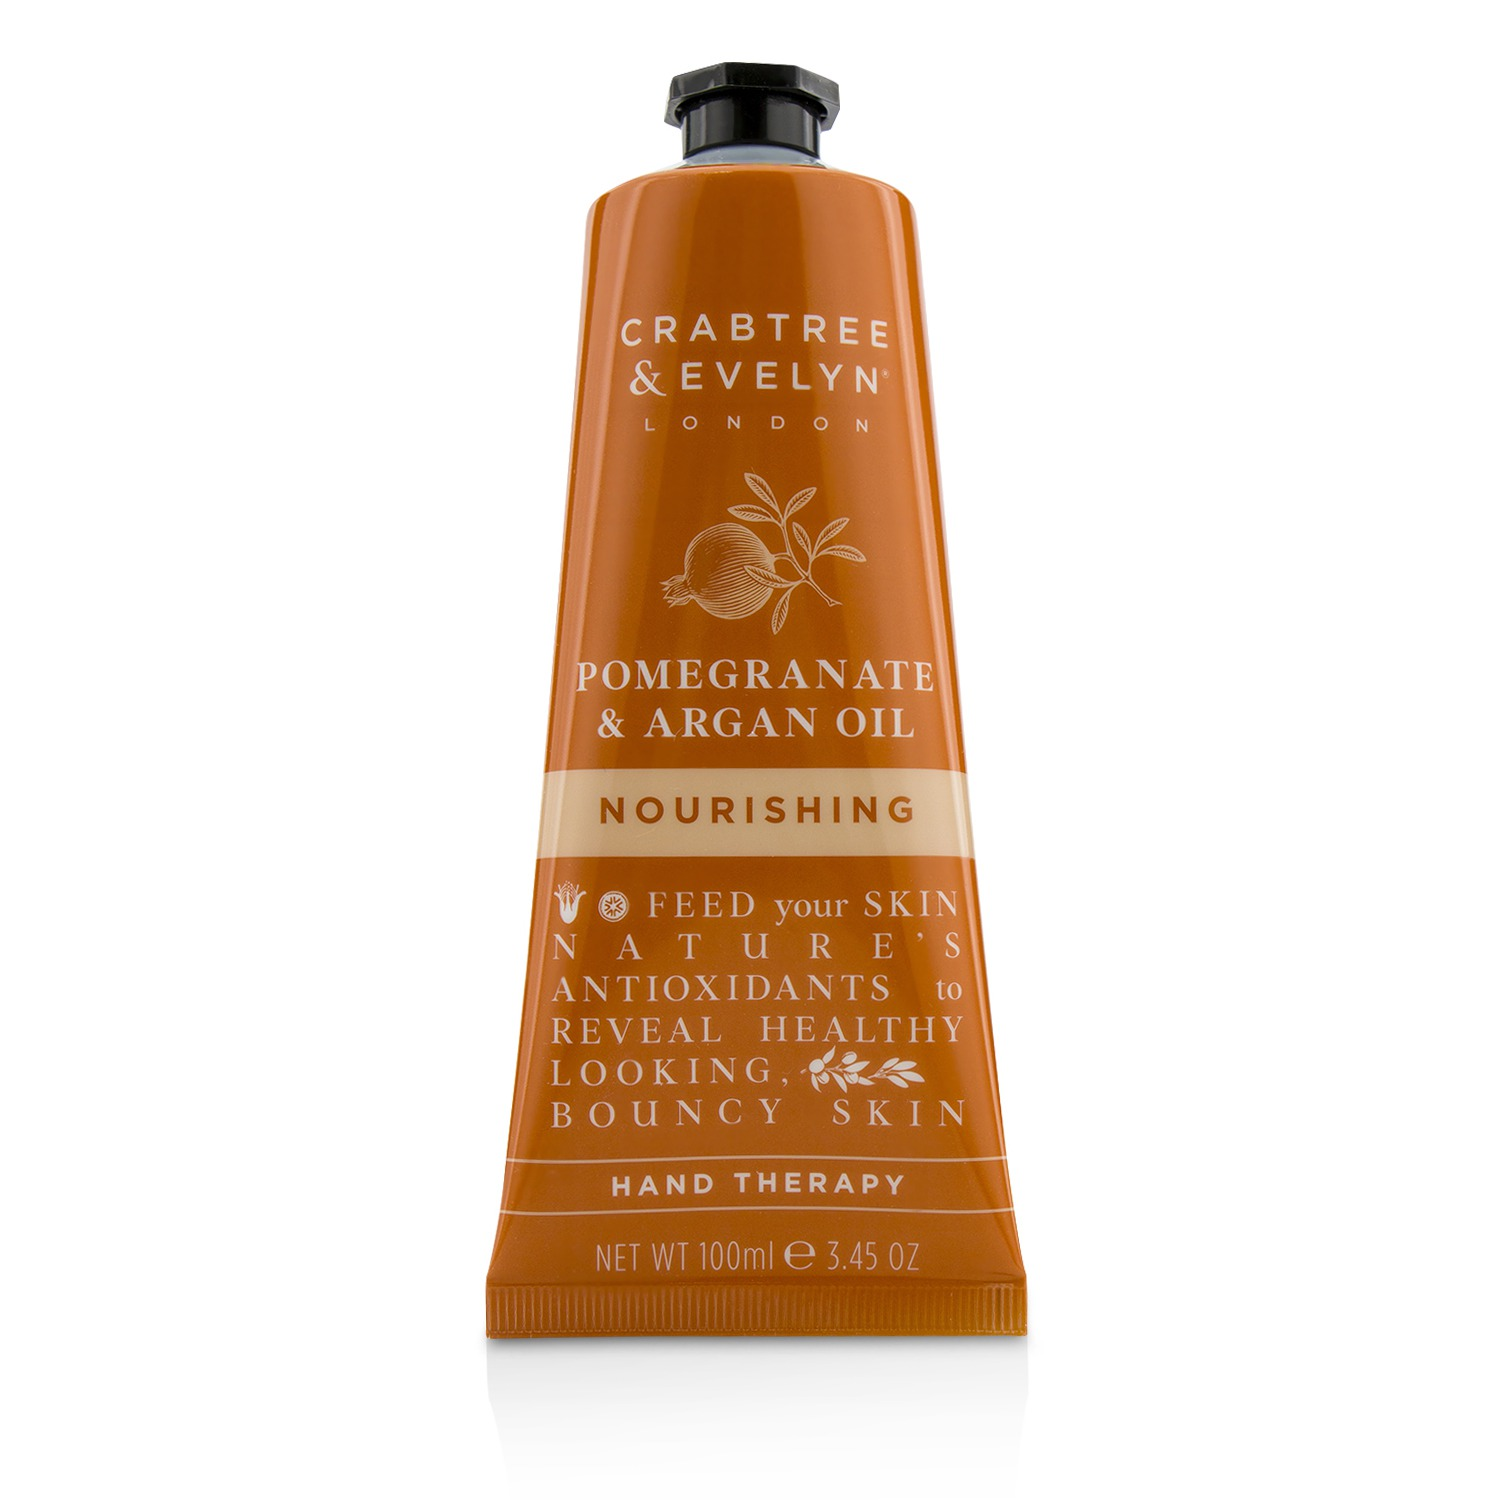 Crabtree-amp-Evelyn-Pomegranate-amp-Argan-Oil-Nourishing-Hand-Therapy thumbnail 5